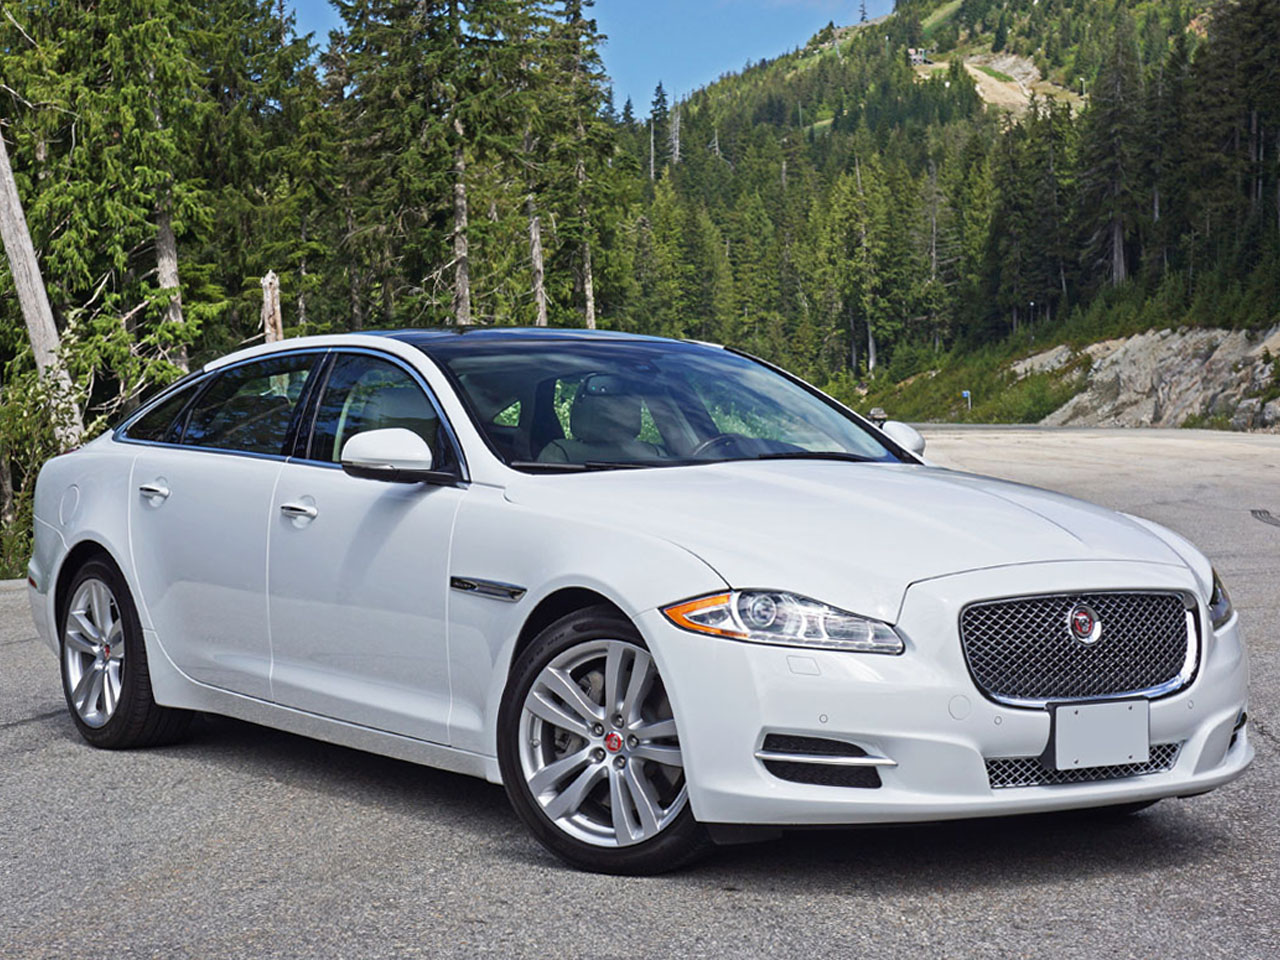 2015 jaguar xjl portfolio awd road test review carcostcanada. Black Bedroom Furniture Sets. Home Design Ideas